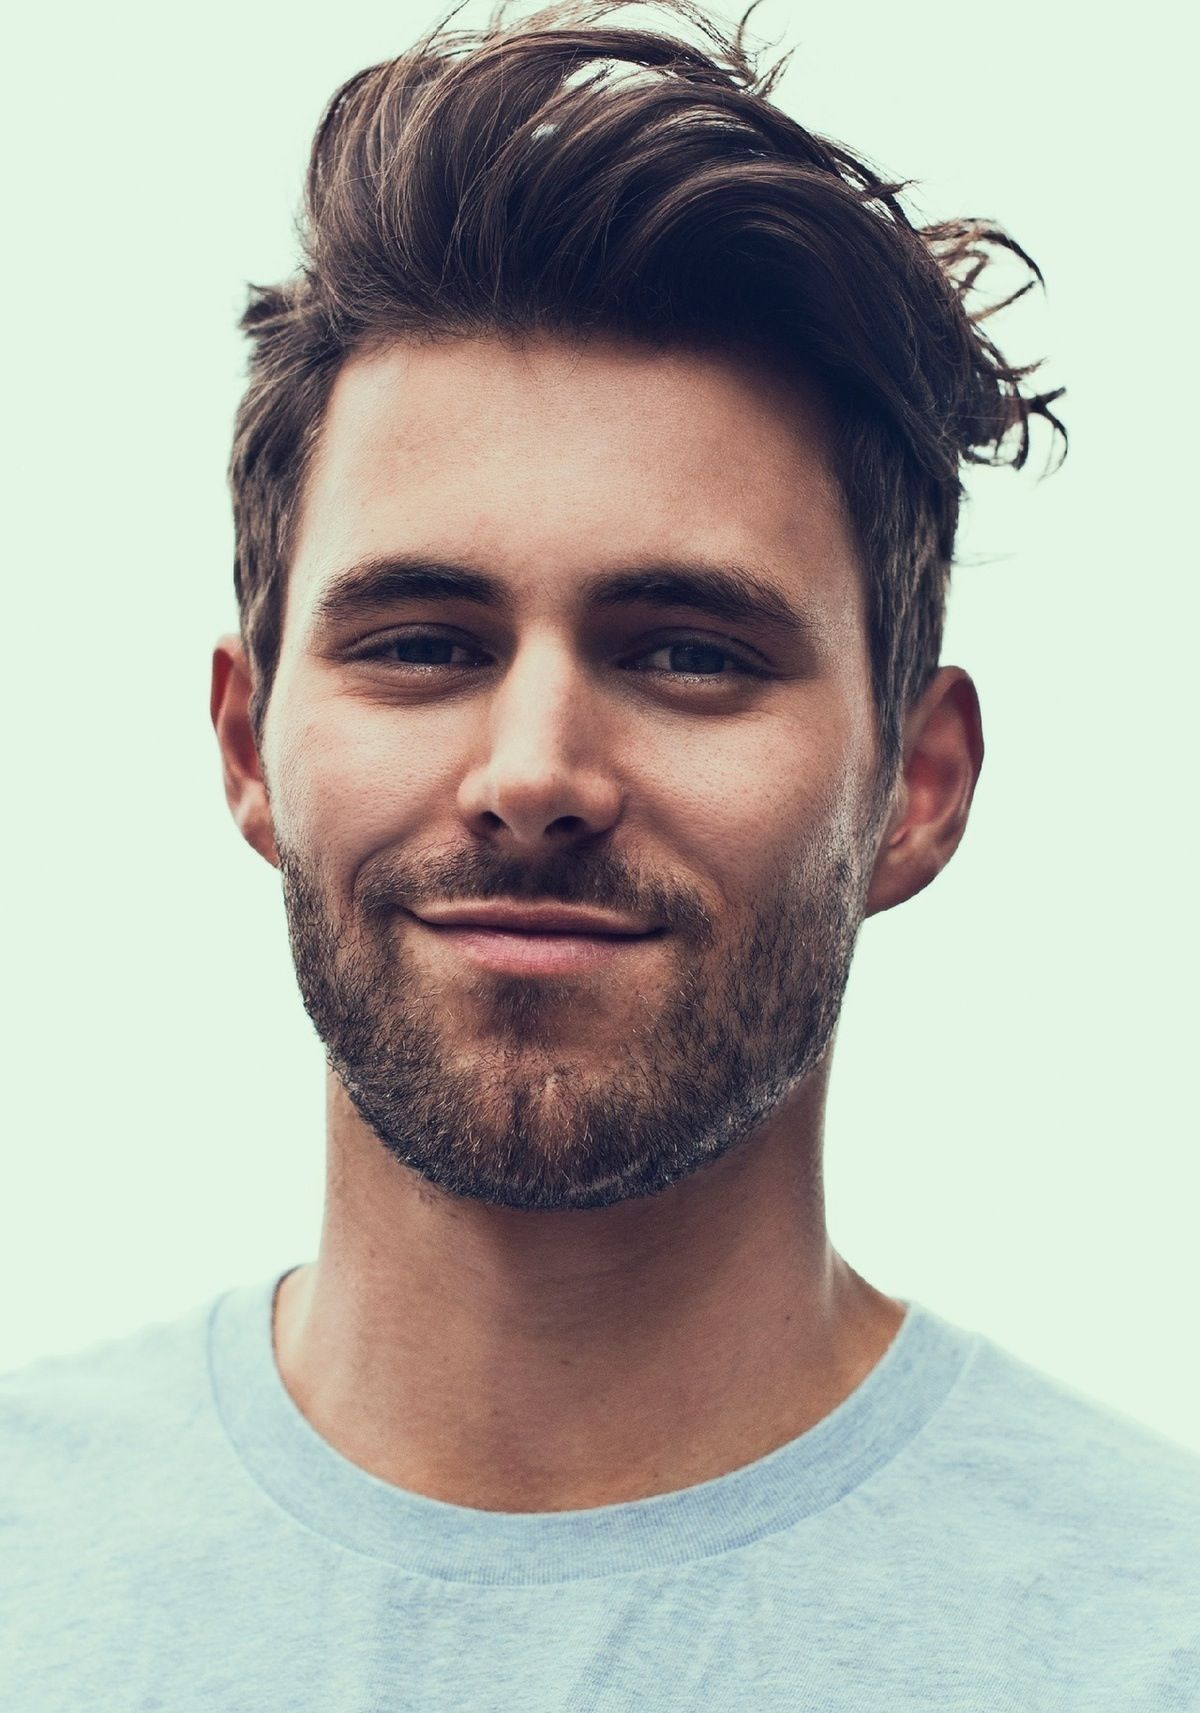 Hipster Haircut For Men   Haircuts Hair style and Hipster haircut